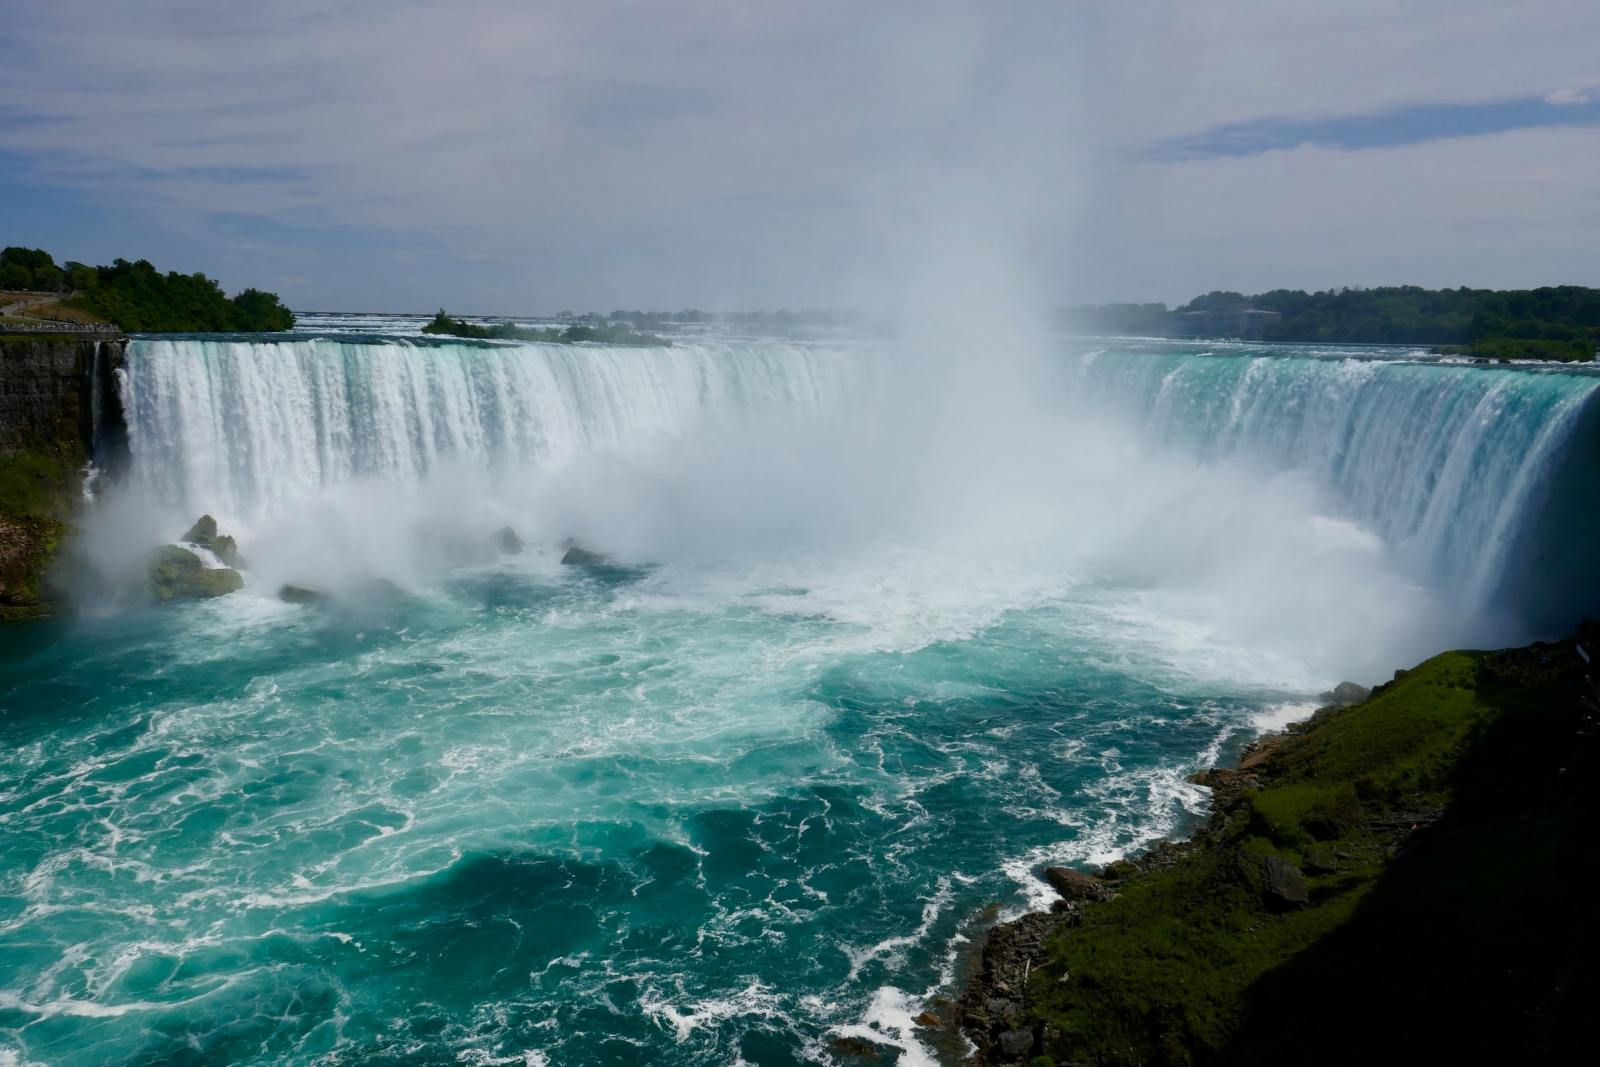 The Best Areas to Stay in Niagara Falls, Canadian Side